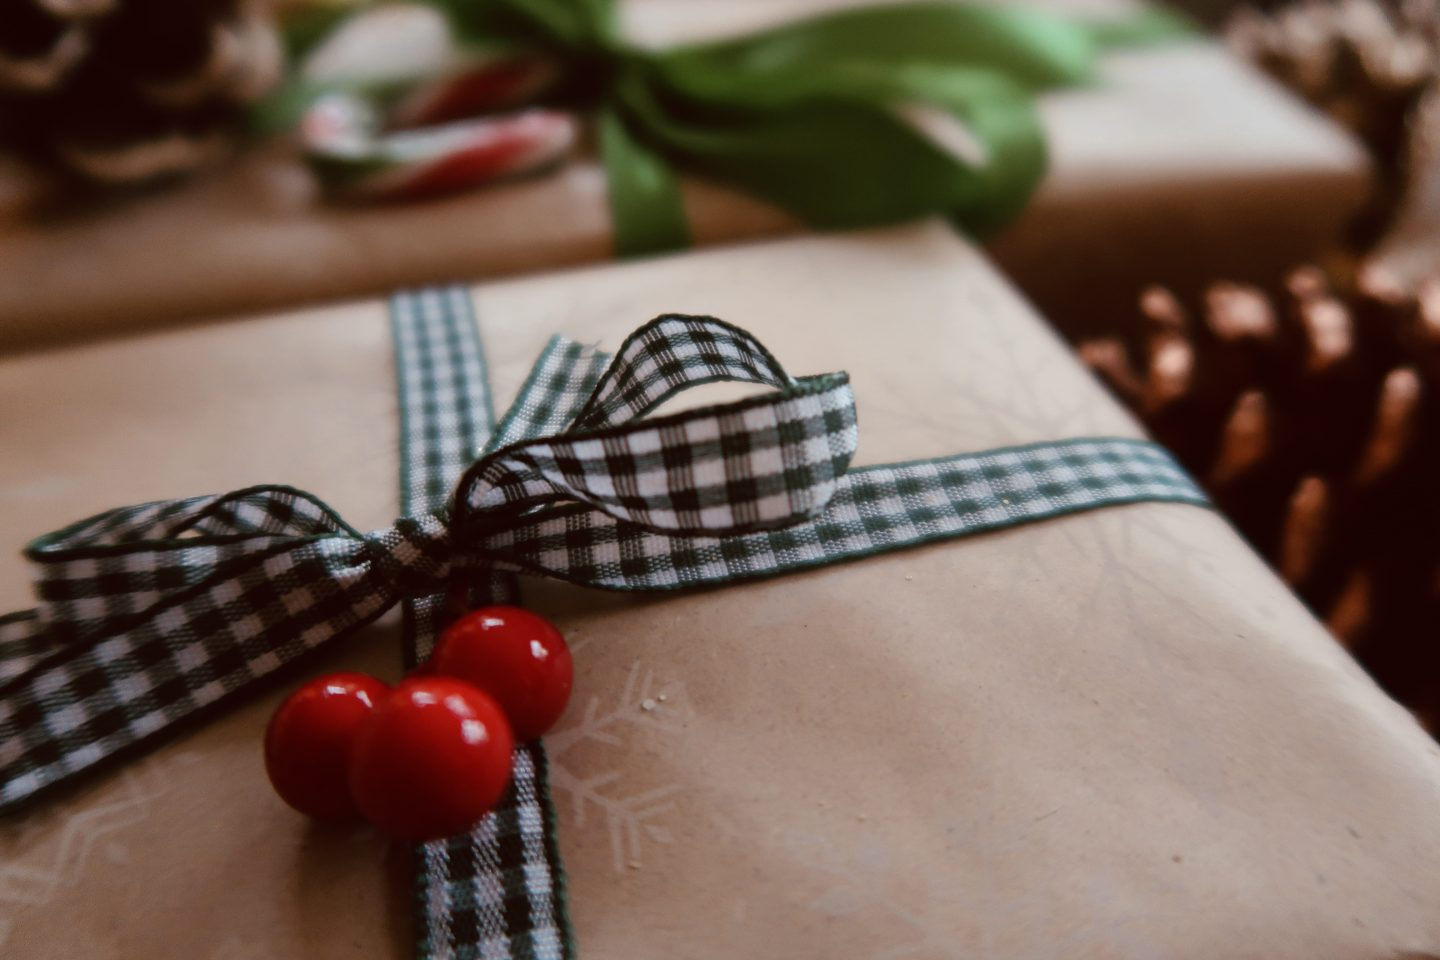 Brown wrapping paper with green chequered ribbon and red berries